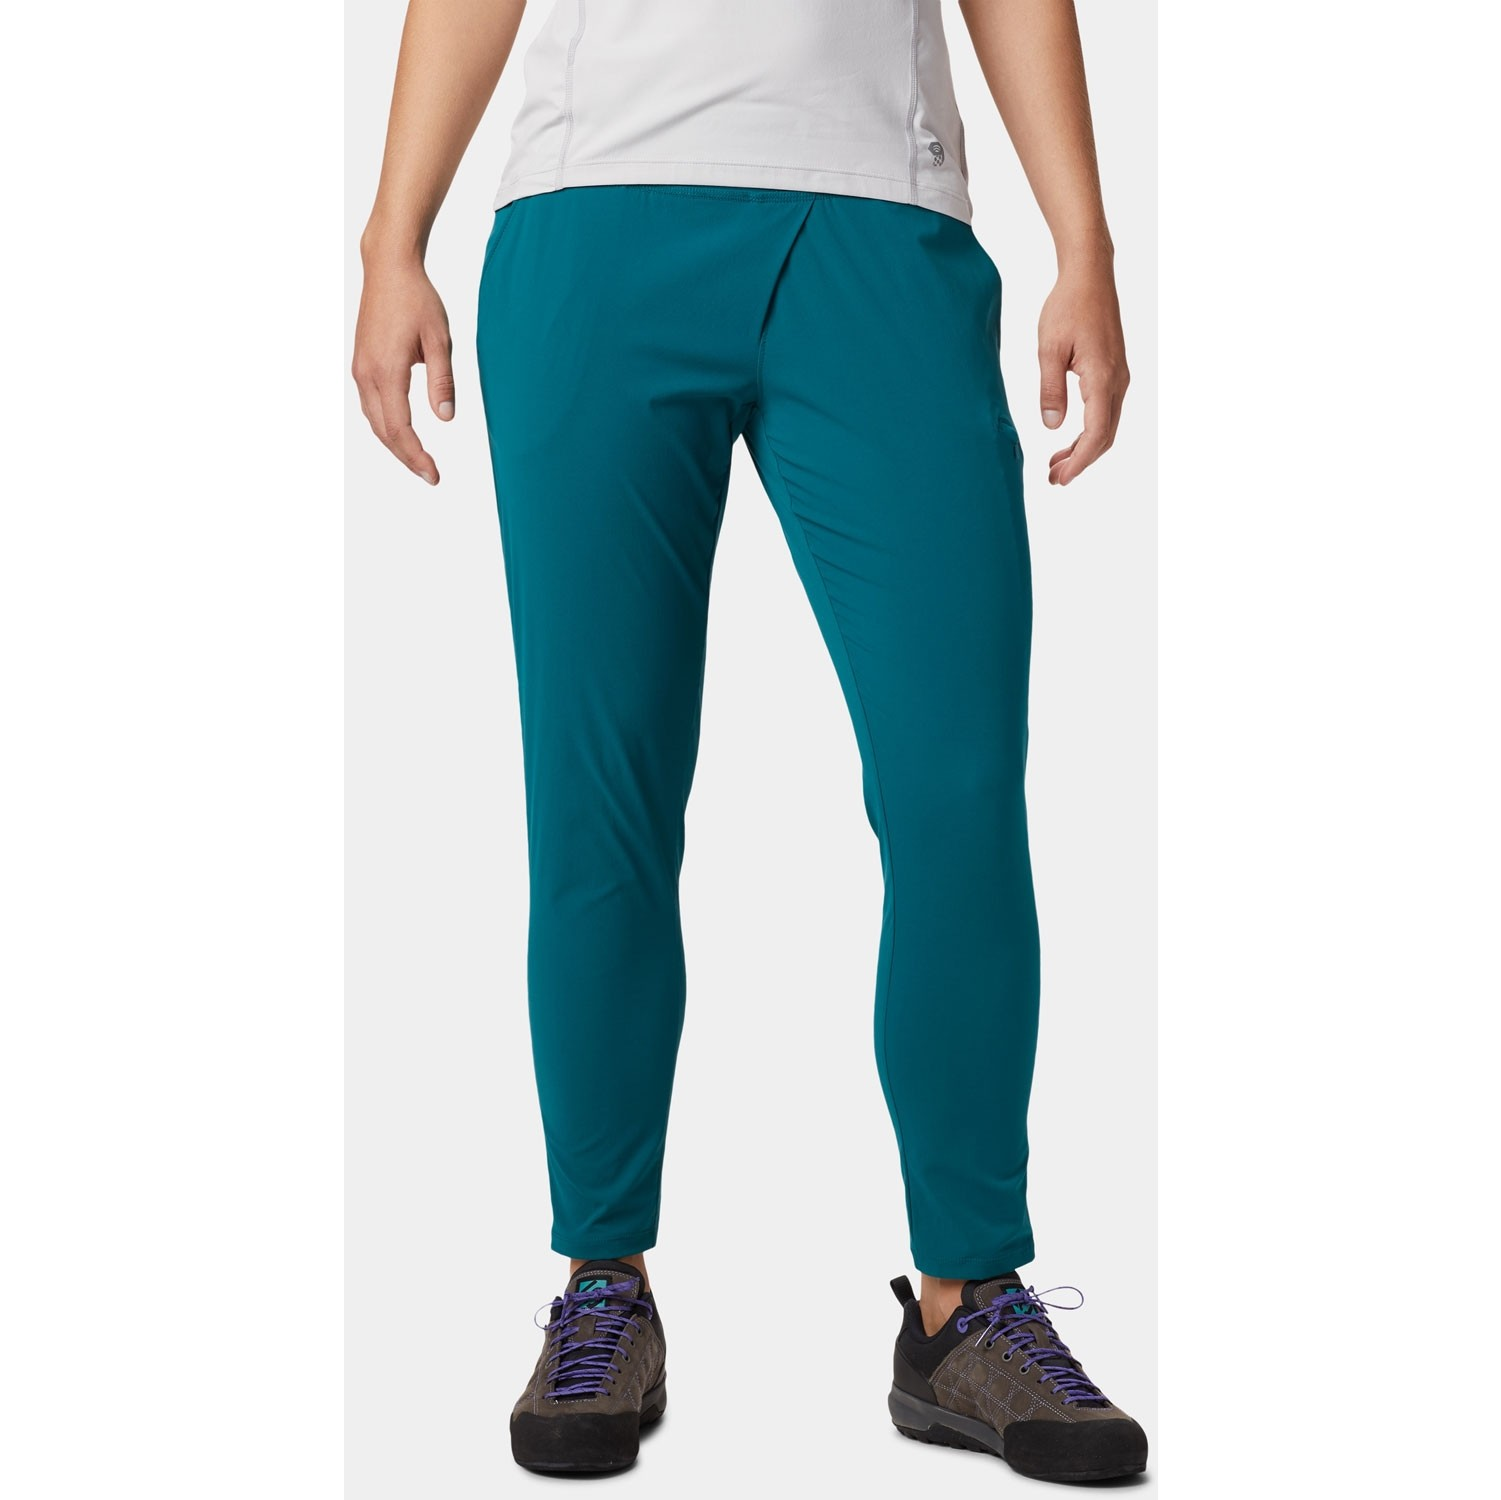 Mountain Hardwear Dynama Pants - Dive - model front